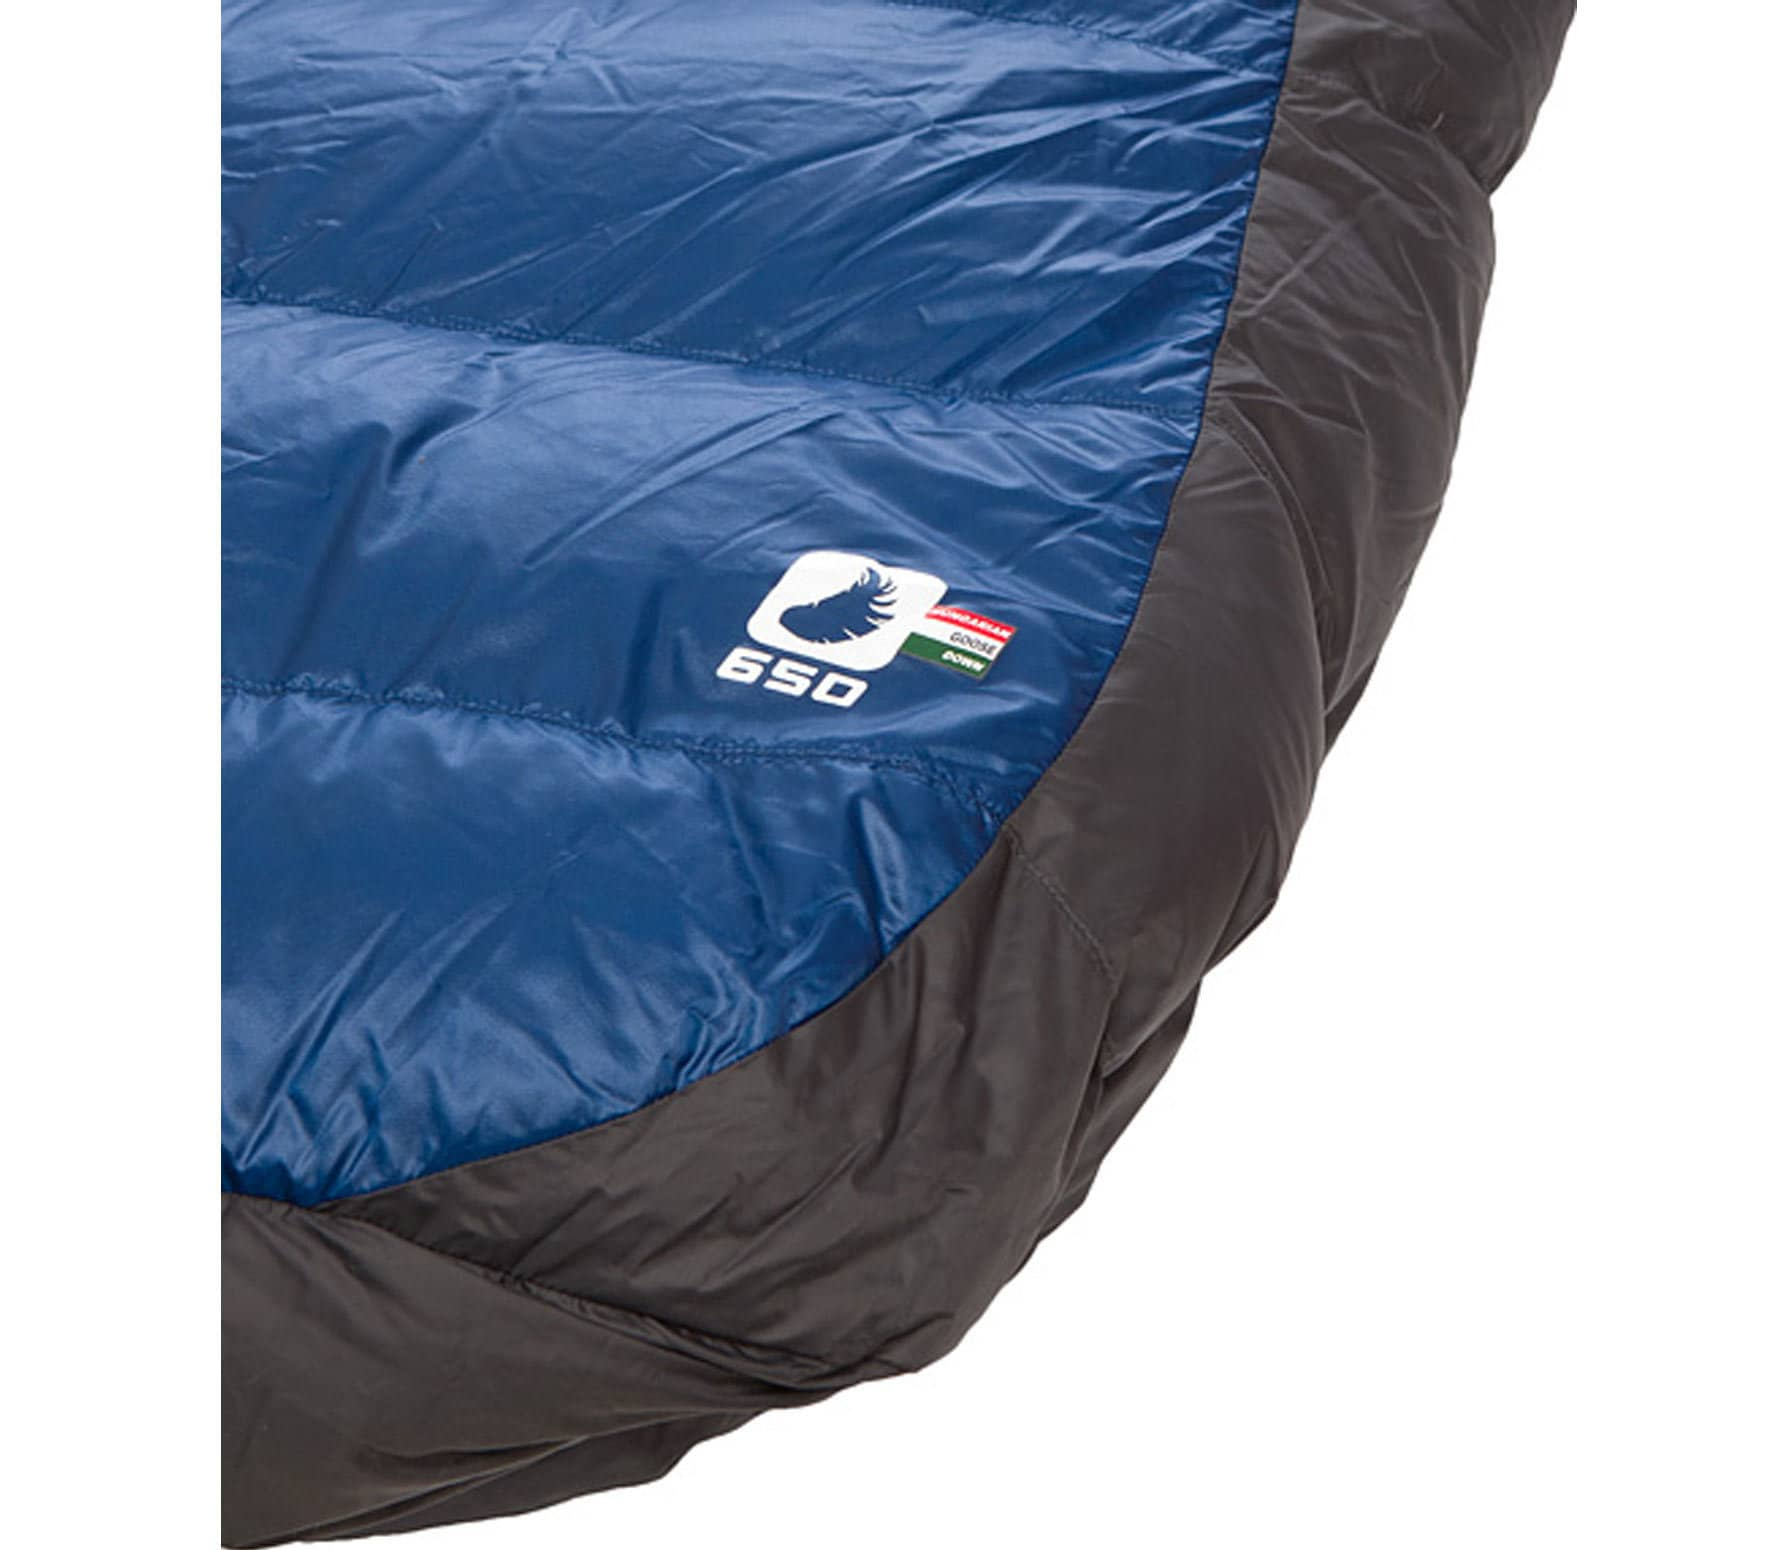 88aa33617 The North Face Blue Kazoo Extra Long down sleeping bag